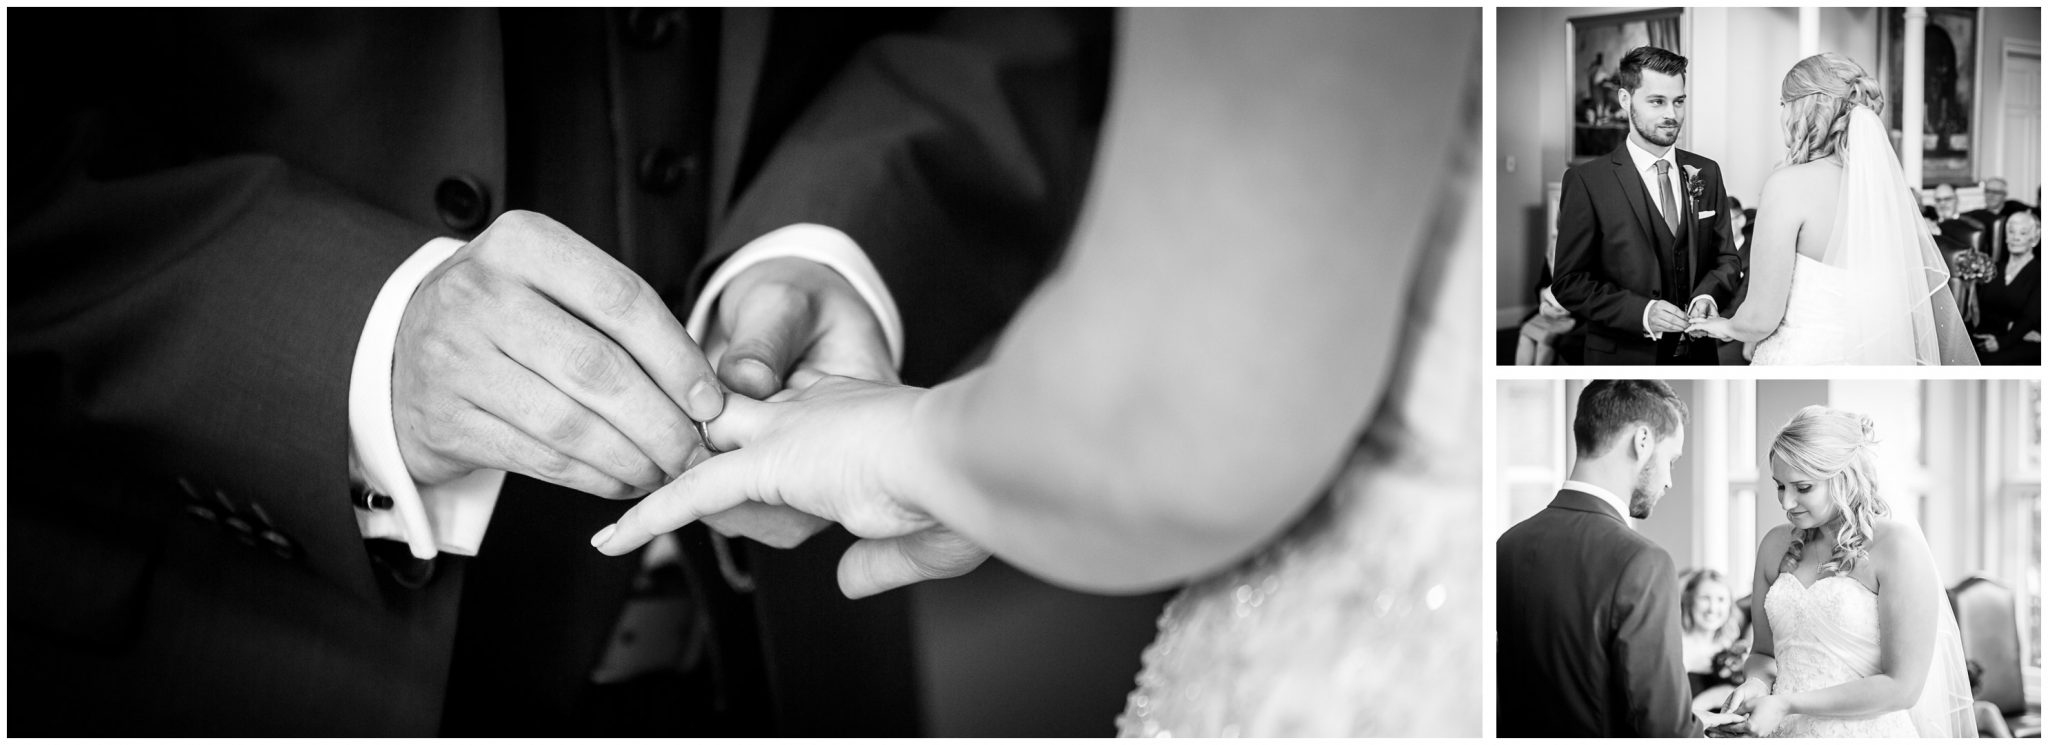 Audleys Wood wedding photograhy groom places ring on bride's finger